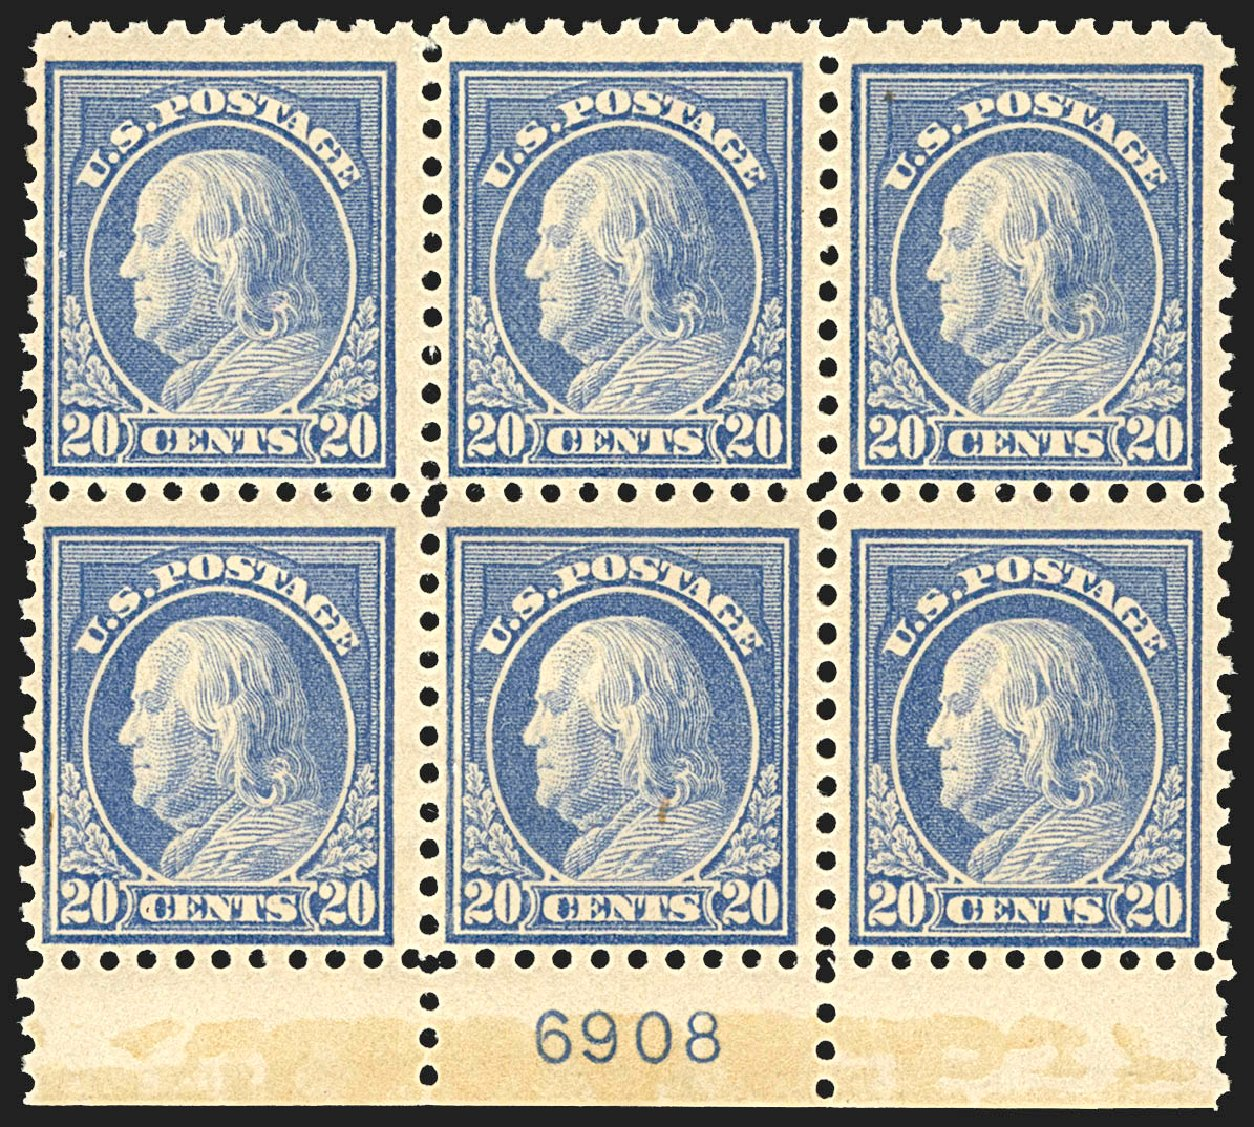 Prices of US Stamp Scott Catalogue 438 - 20c 1914 Franklin Perf 10. Robert Siegel Auction Galleries, Jul 2015, Sale 1107, Lot 469